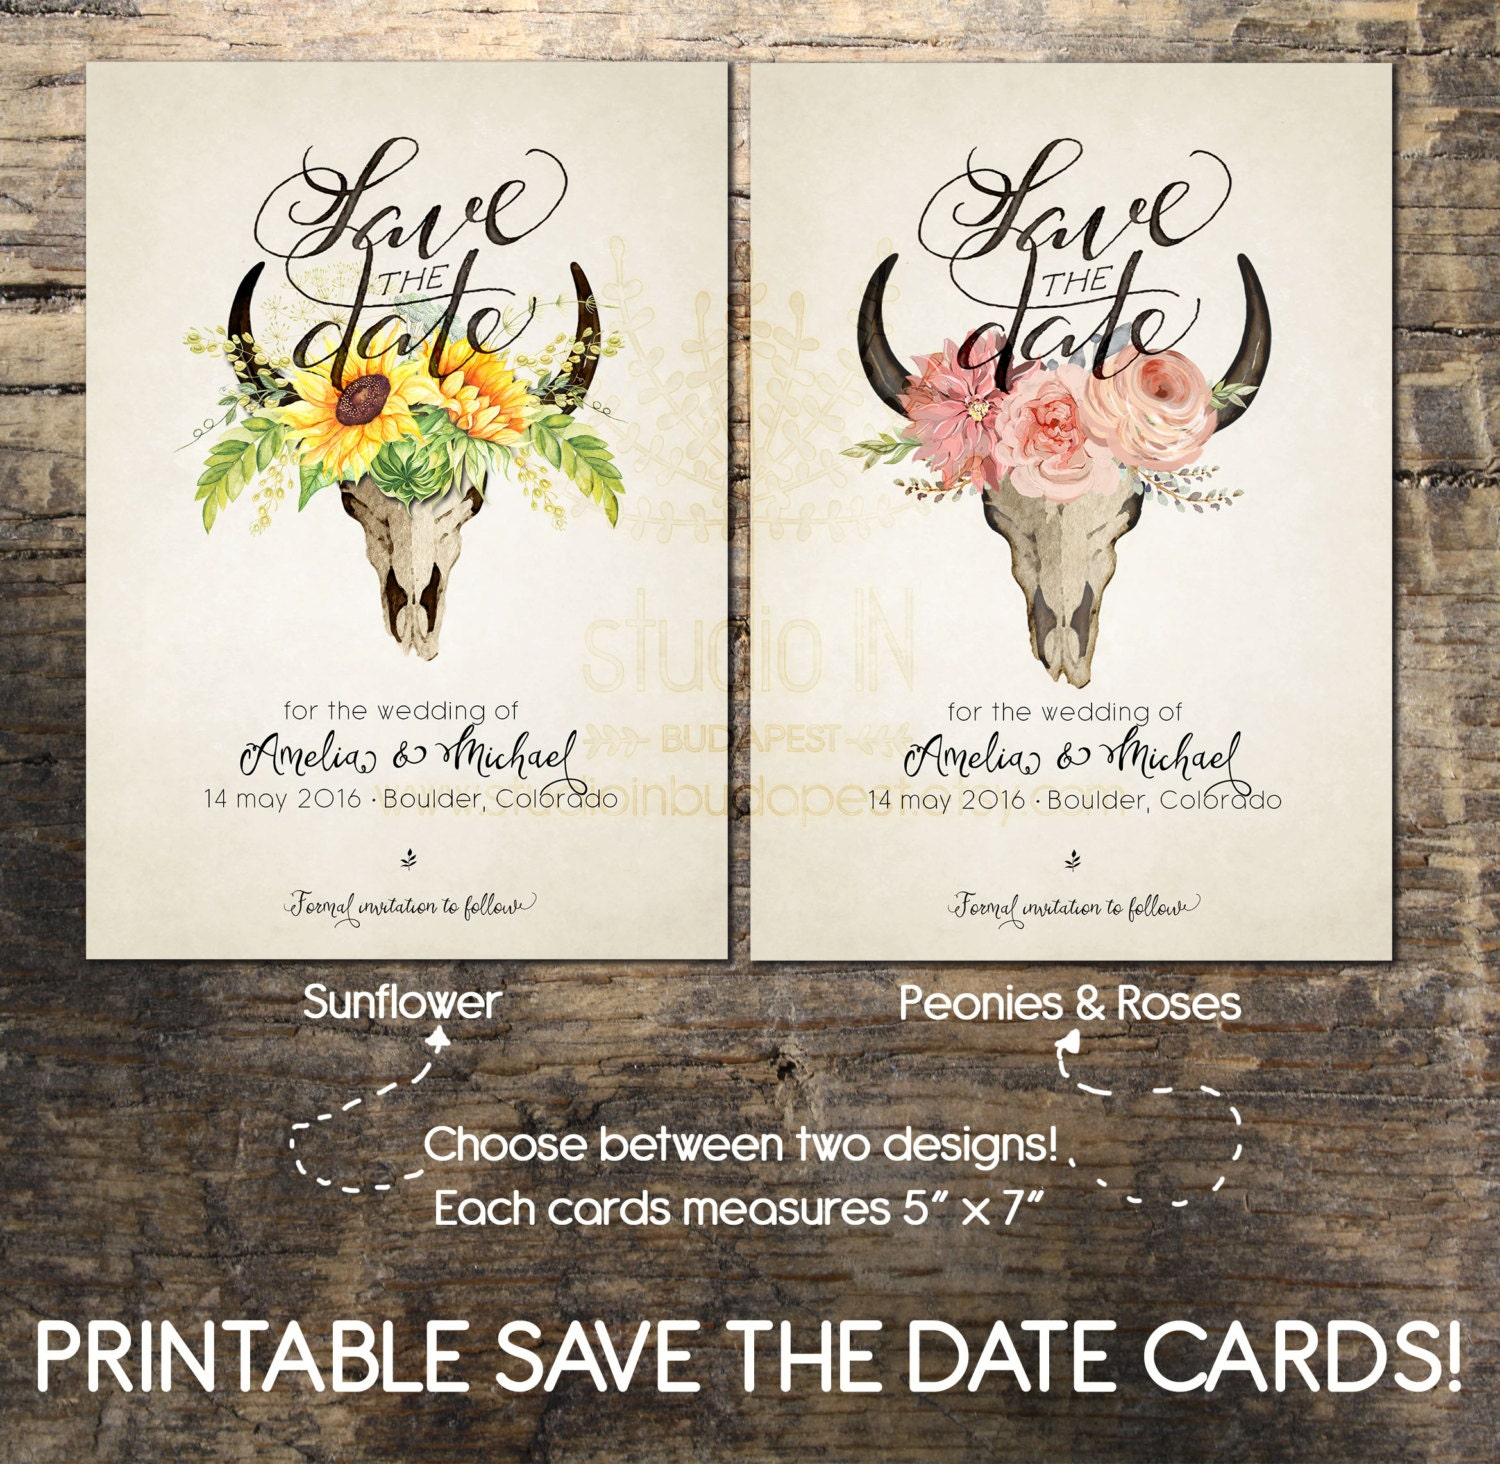 Magic image with regard to printable save the date